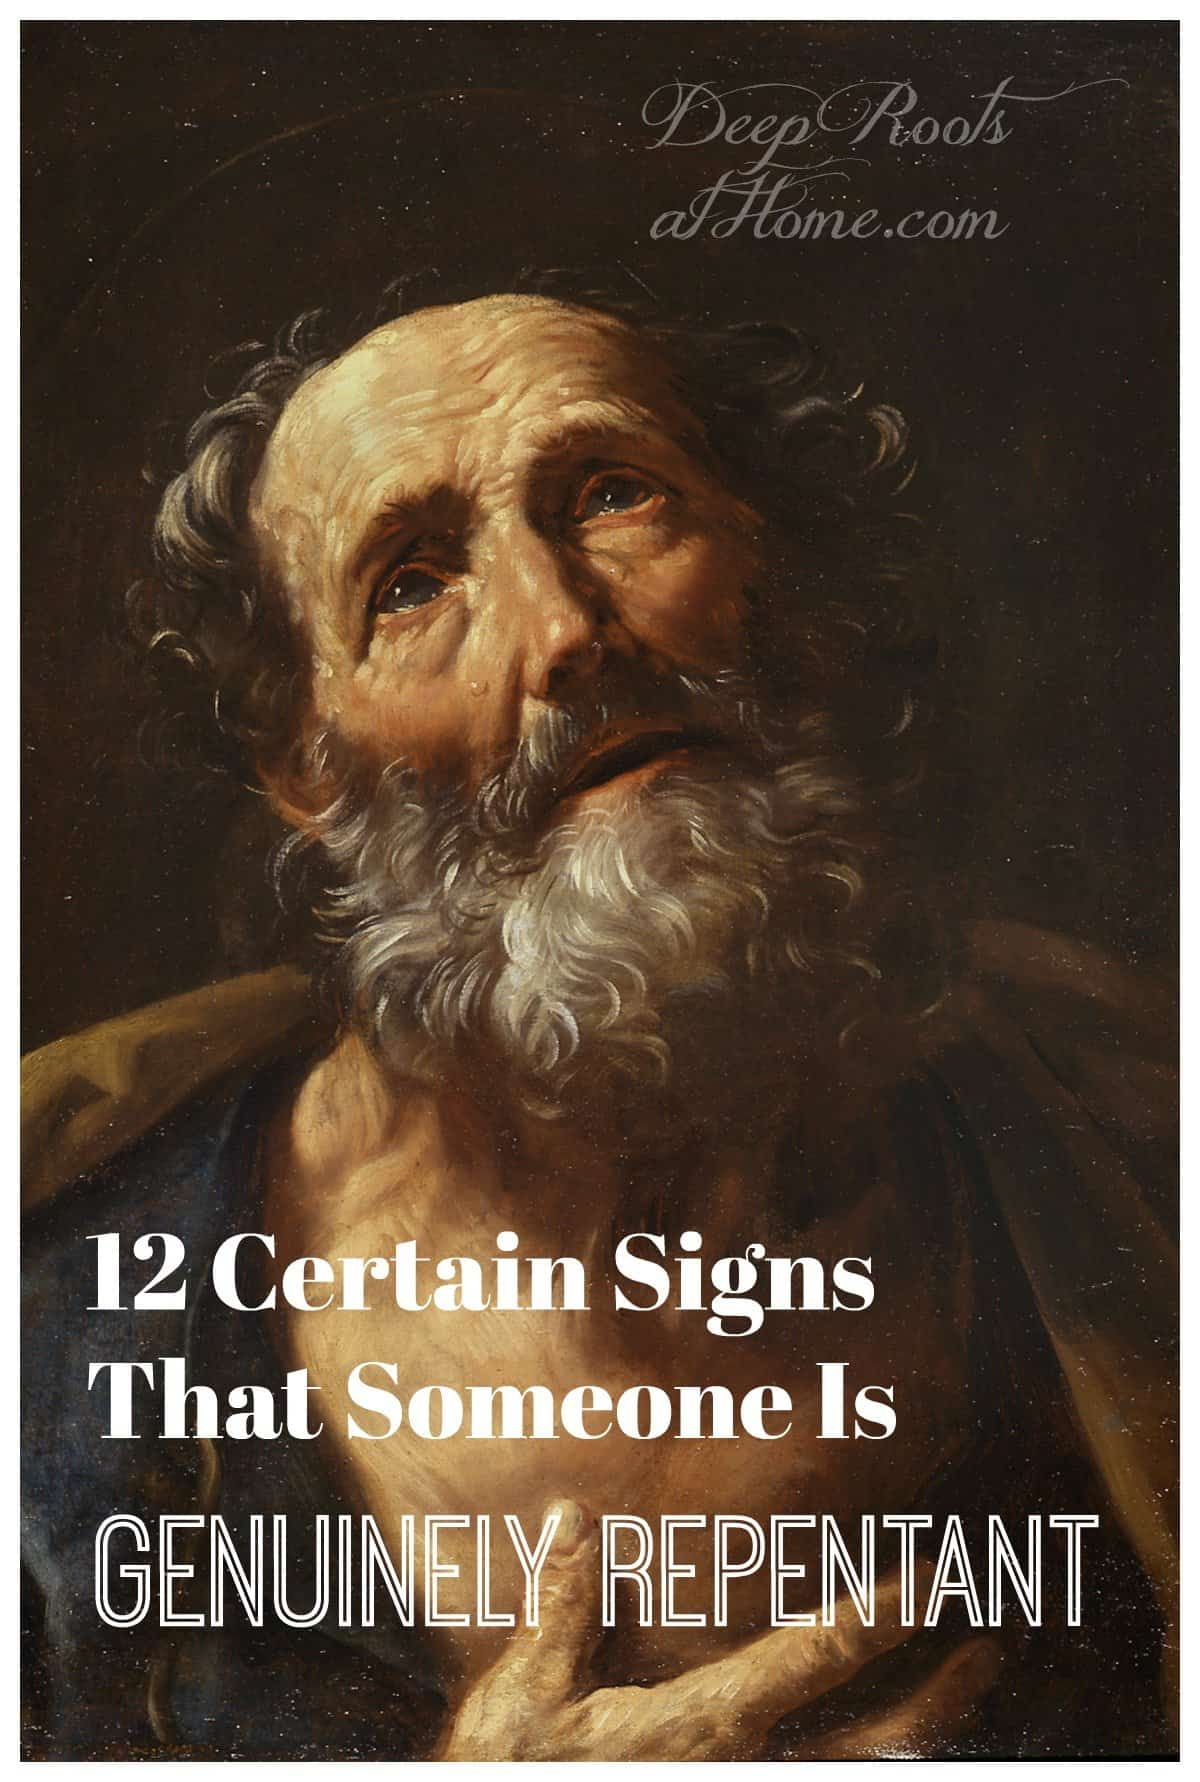 12 Certain Signs That Someone Is Genuinely Repentant. St Peter grieves denying Christ